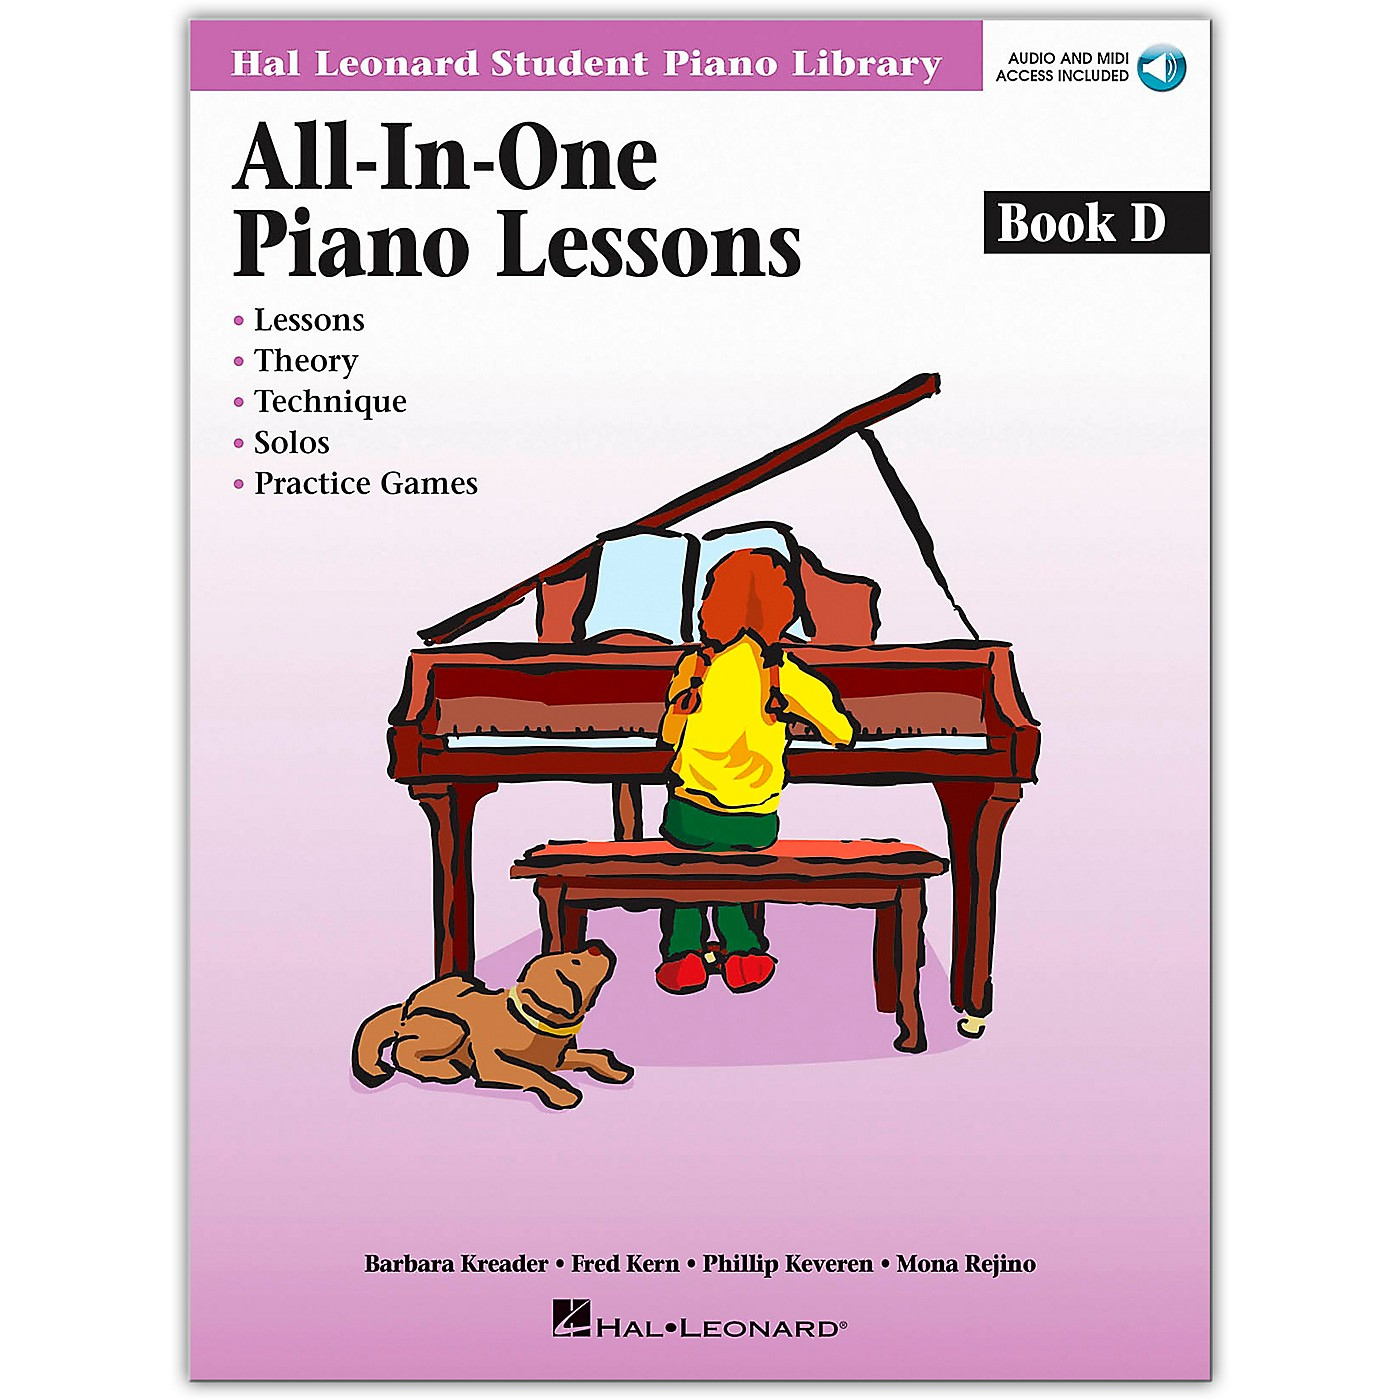 Hal Leonard All-In-One Piano Lessons Book D (Book/Online Audio) thumbnail